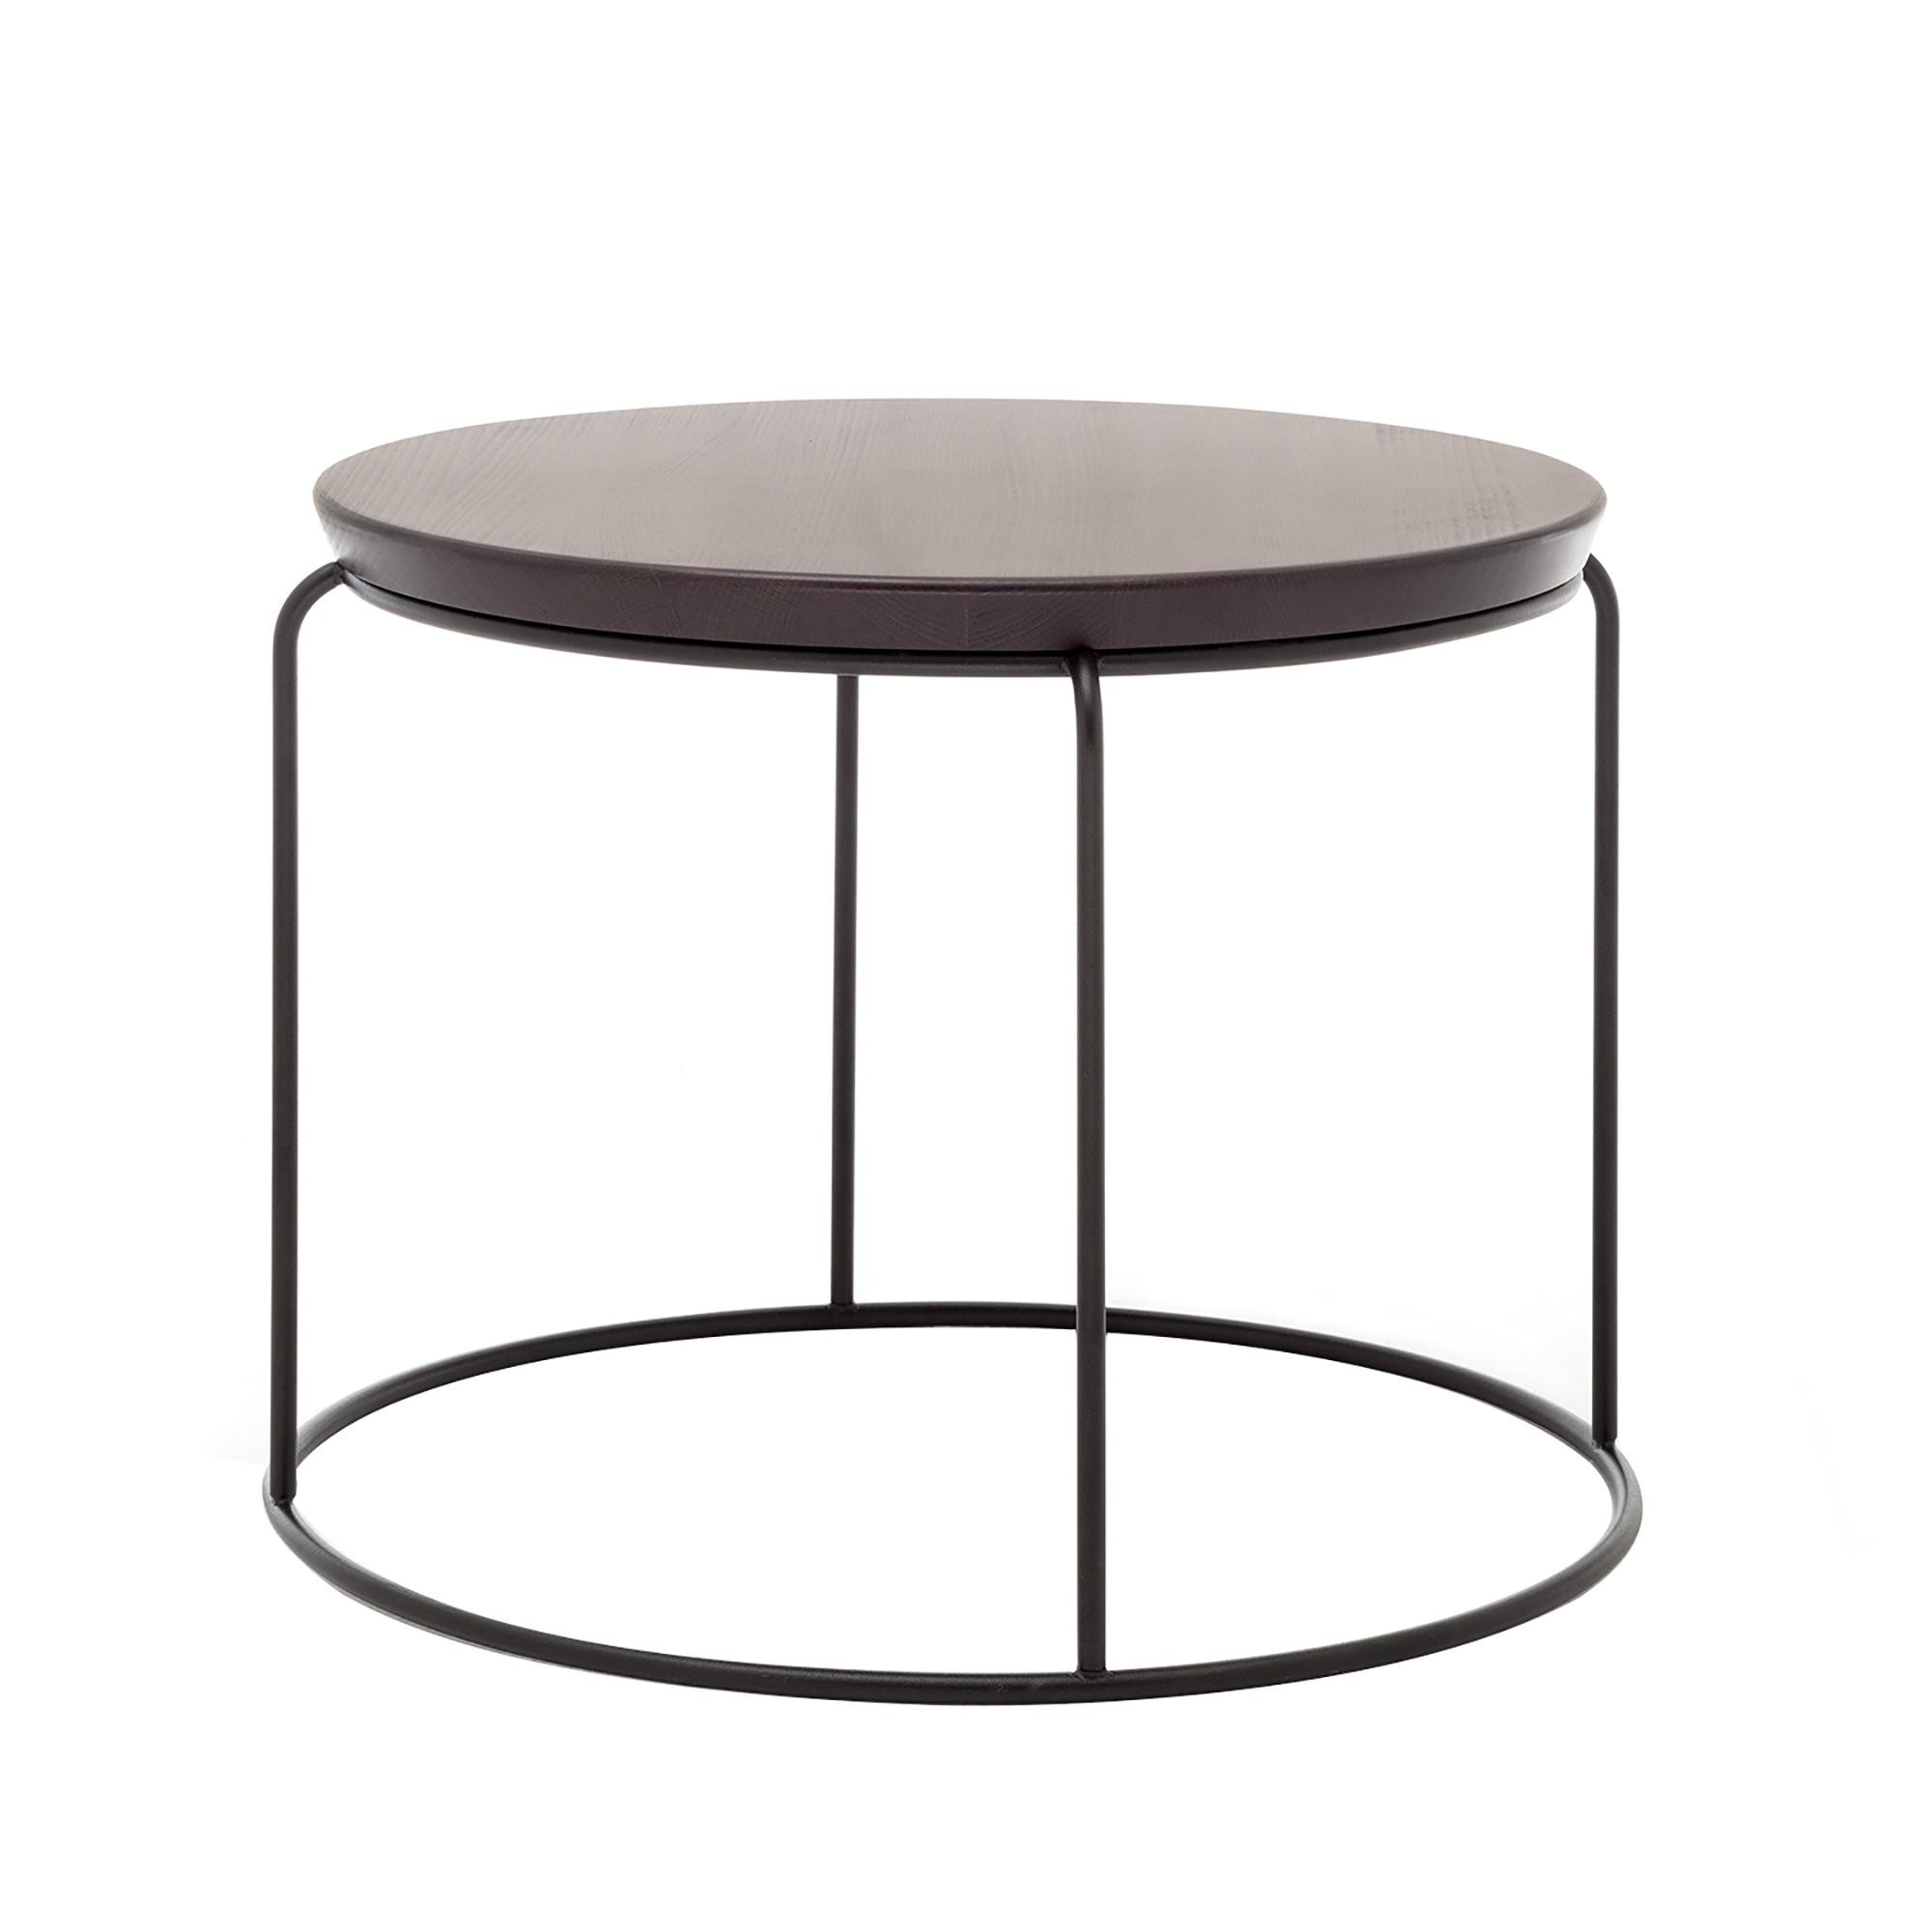 Rolf Benz Couchtisch Rund Freistil 151 Coffee Table Round